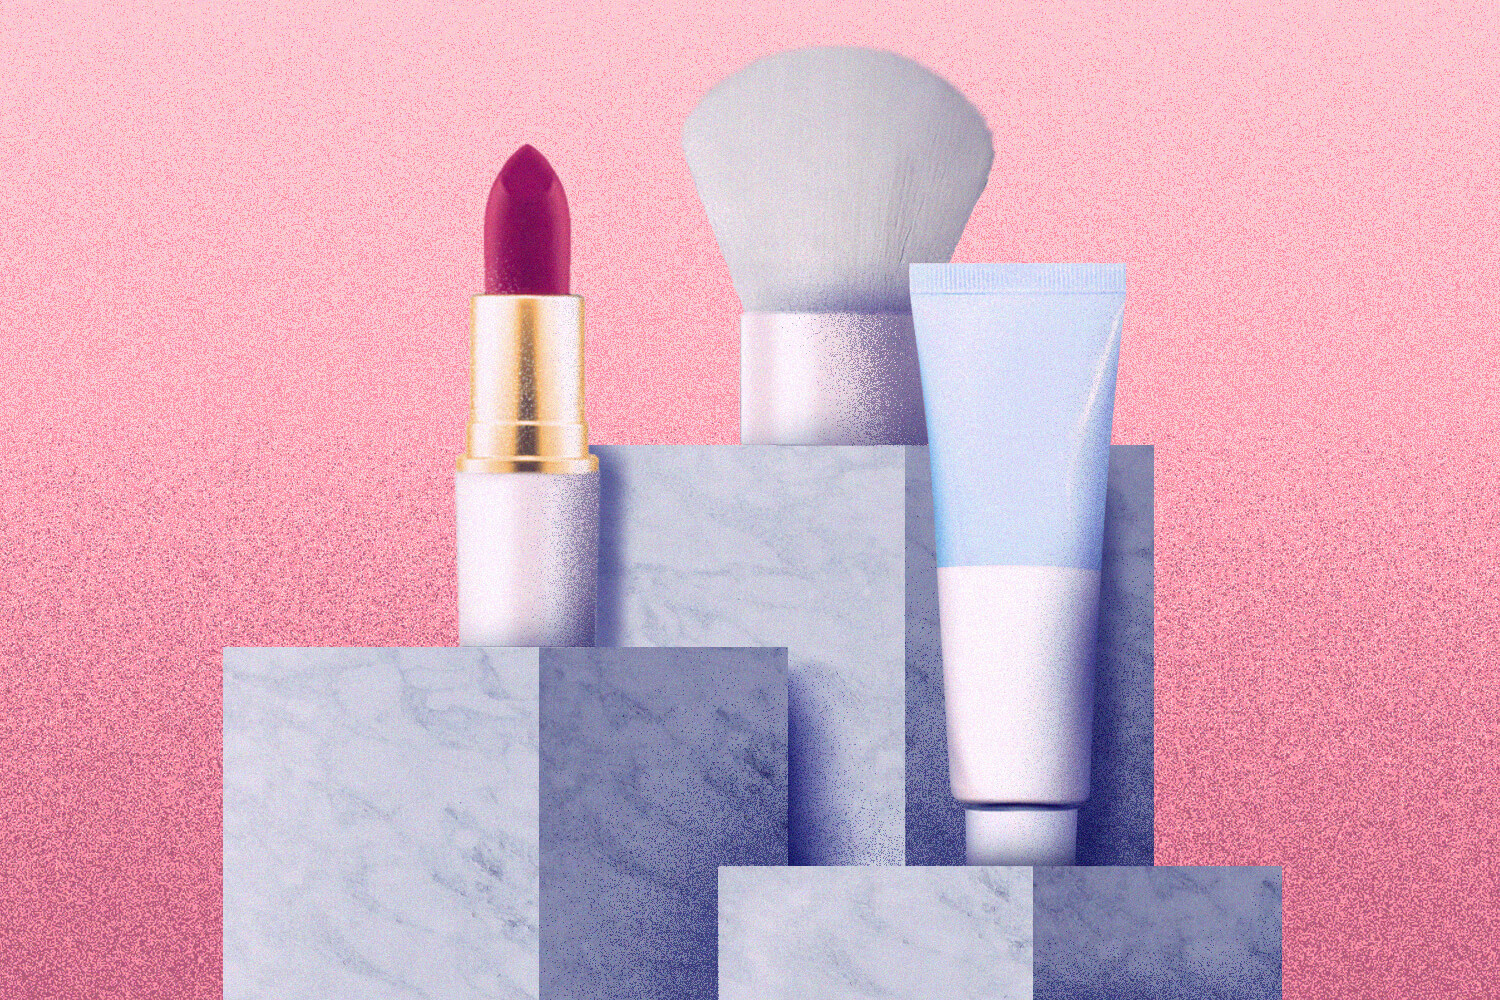 Skincare companies may avoid the sales slump that's dried up the once-silky beauty market—if they pay extra attention to a new customer. Francis Scialabba